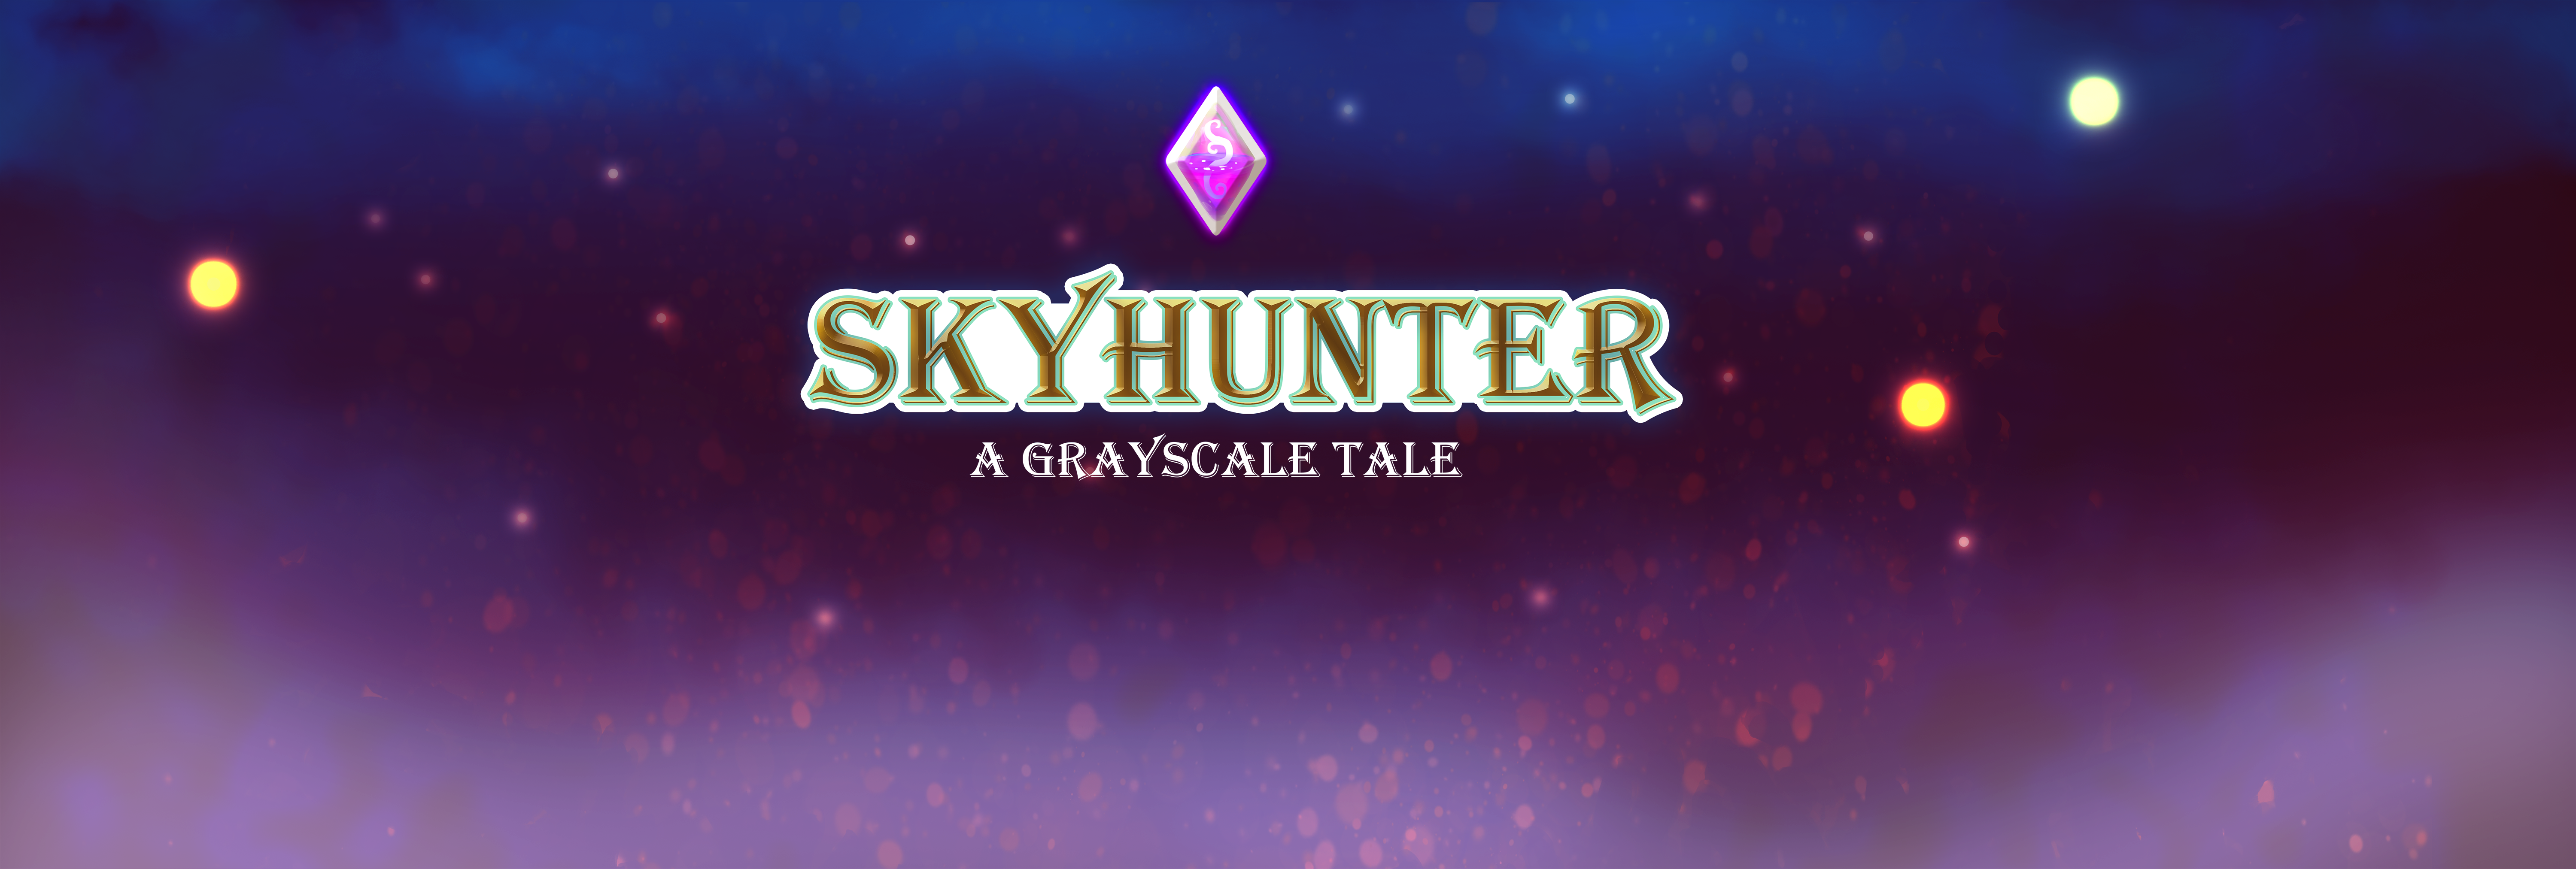 SkyHunter - a grayscale tale.